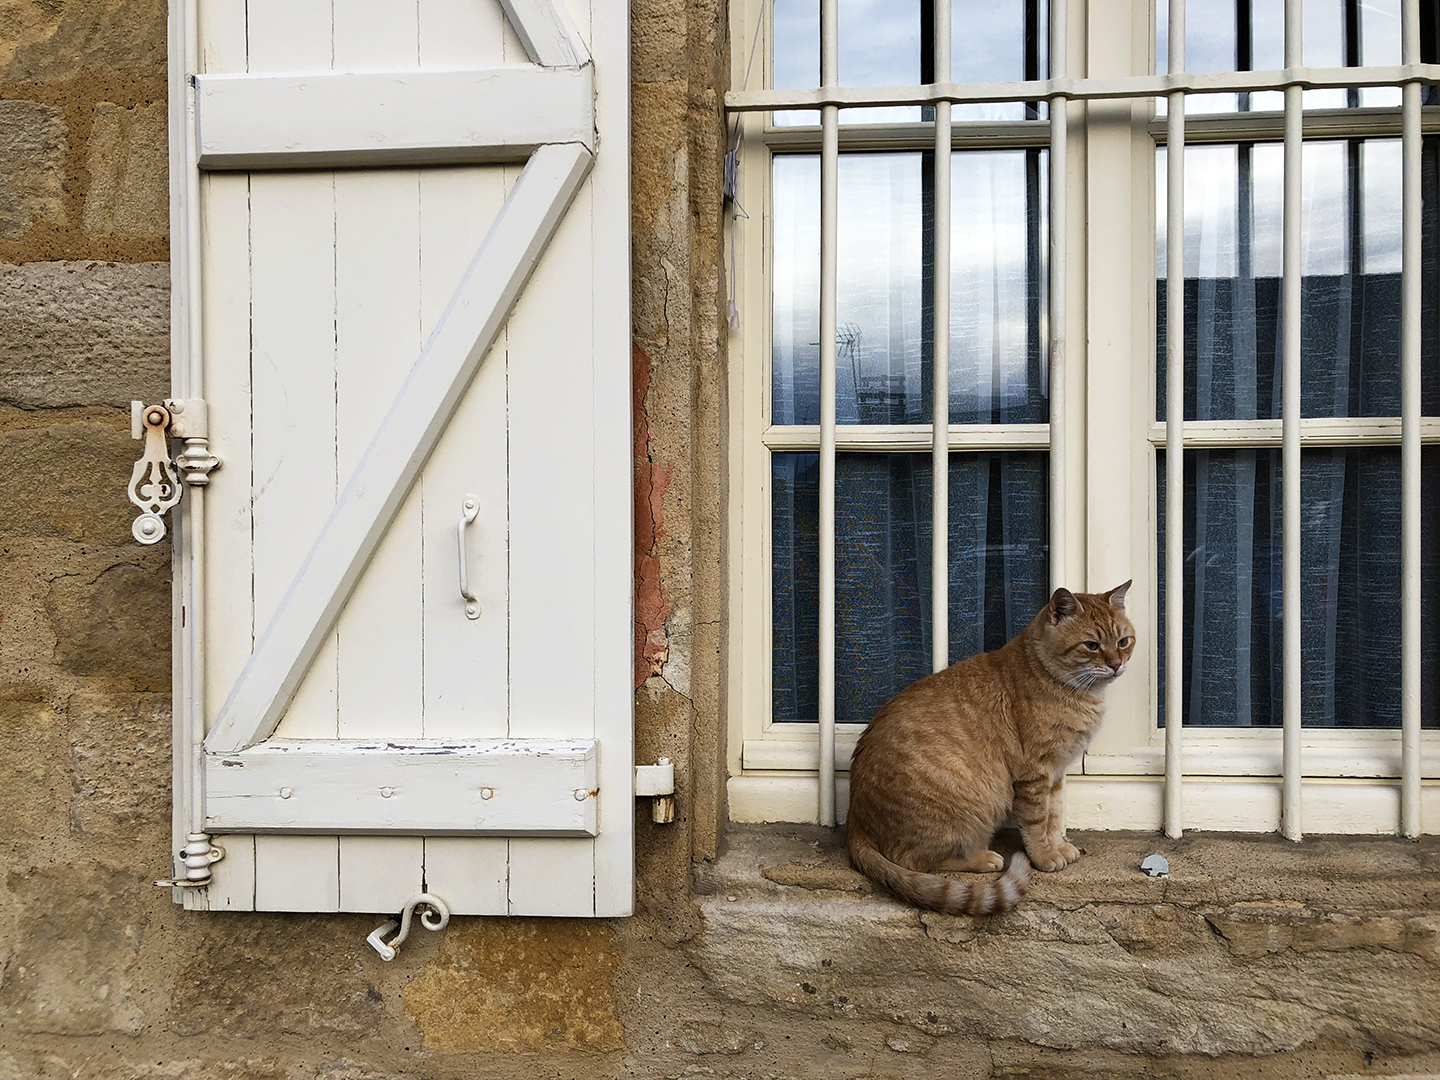 The jail keeper, perhaps? Watchful kitty across the square.